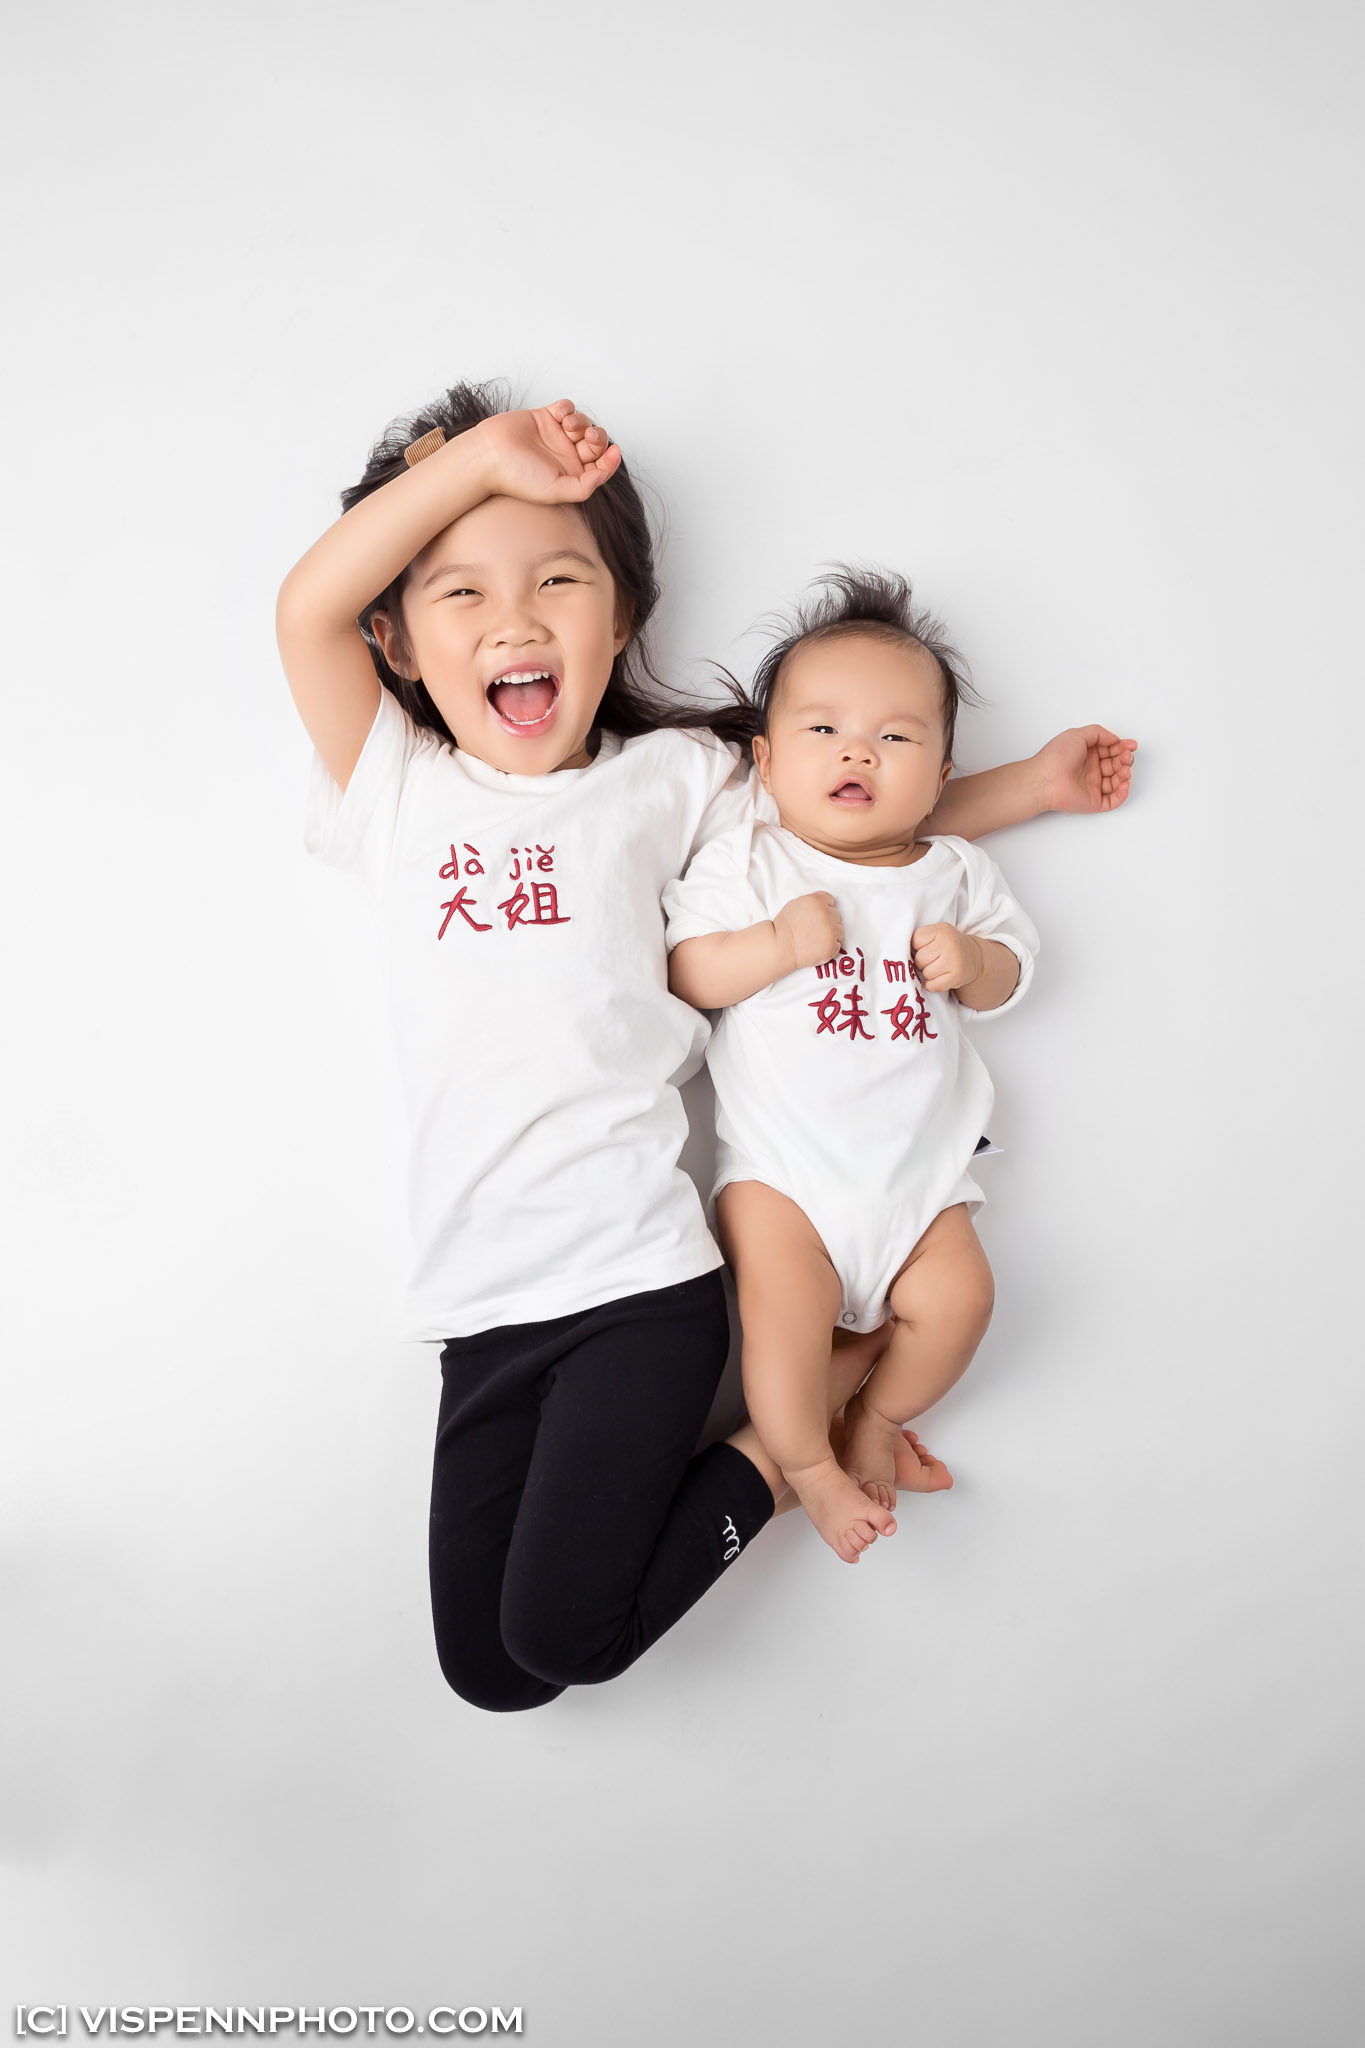 Melbourne Newborn Baby Family Photo BaoBao VISPENN 墨尔本 儿童 宝宝 百天照 满月照 孕妇照 全家福 100DAYS MaggieZHANG 2053 VISPENN